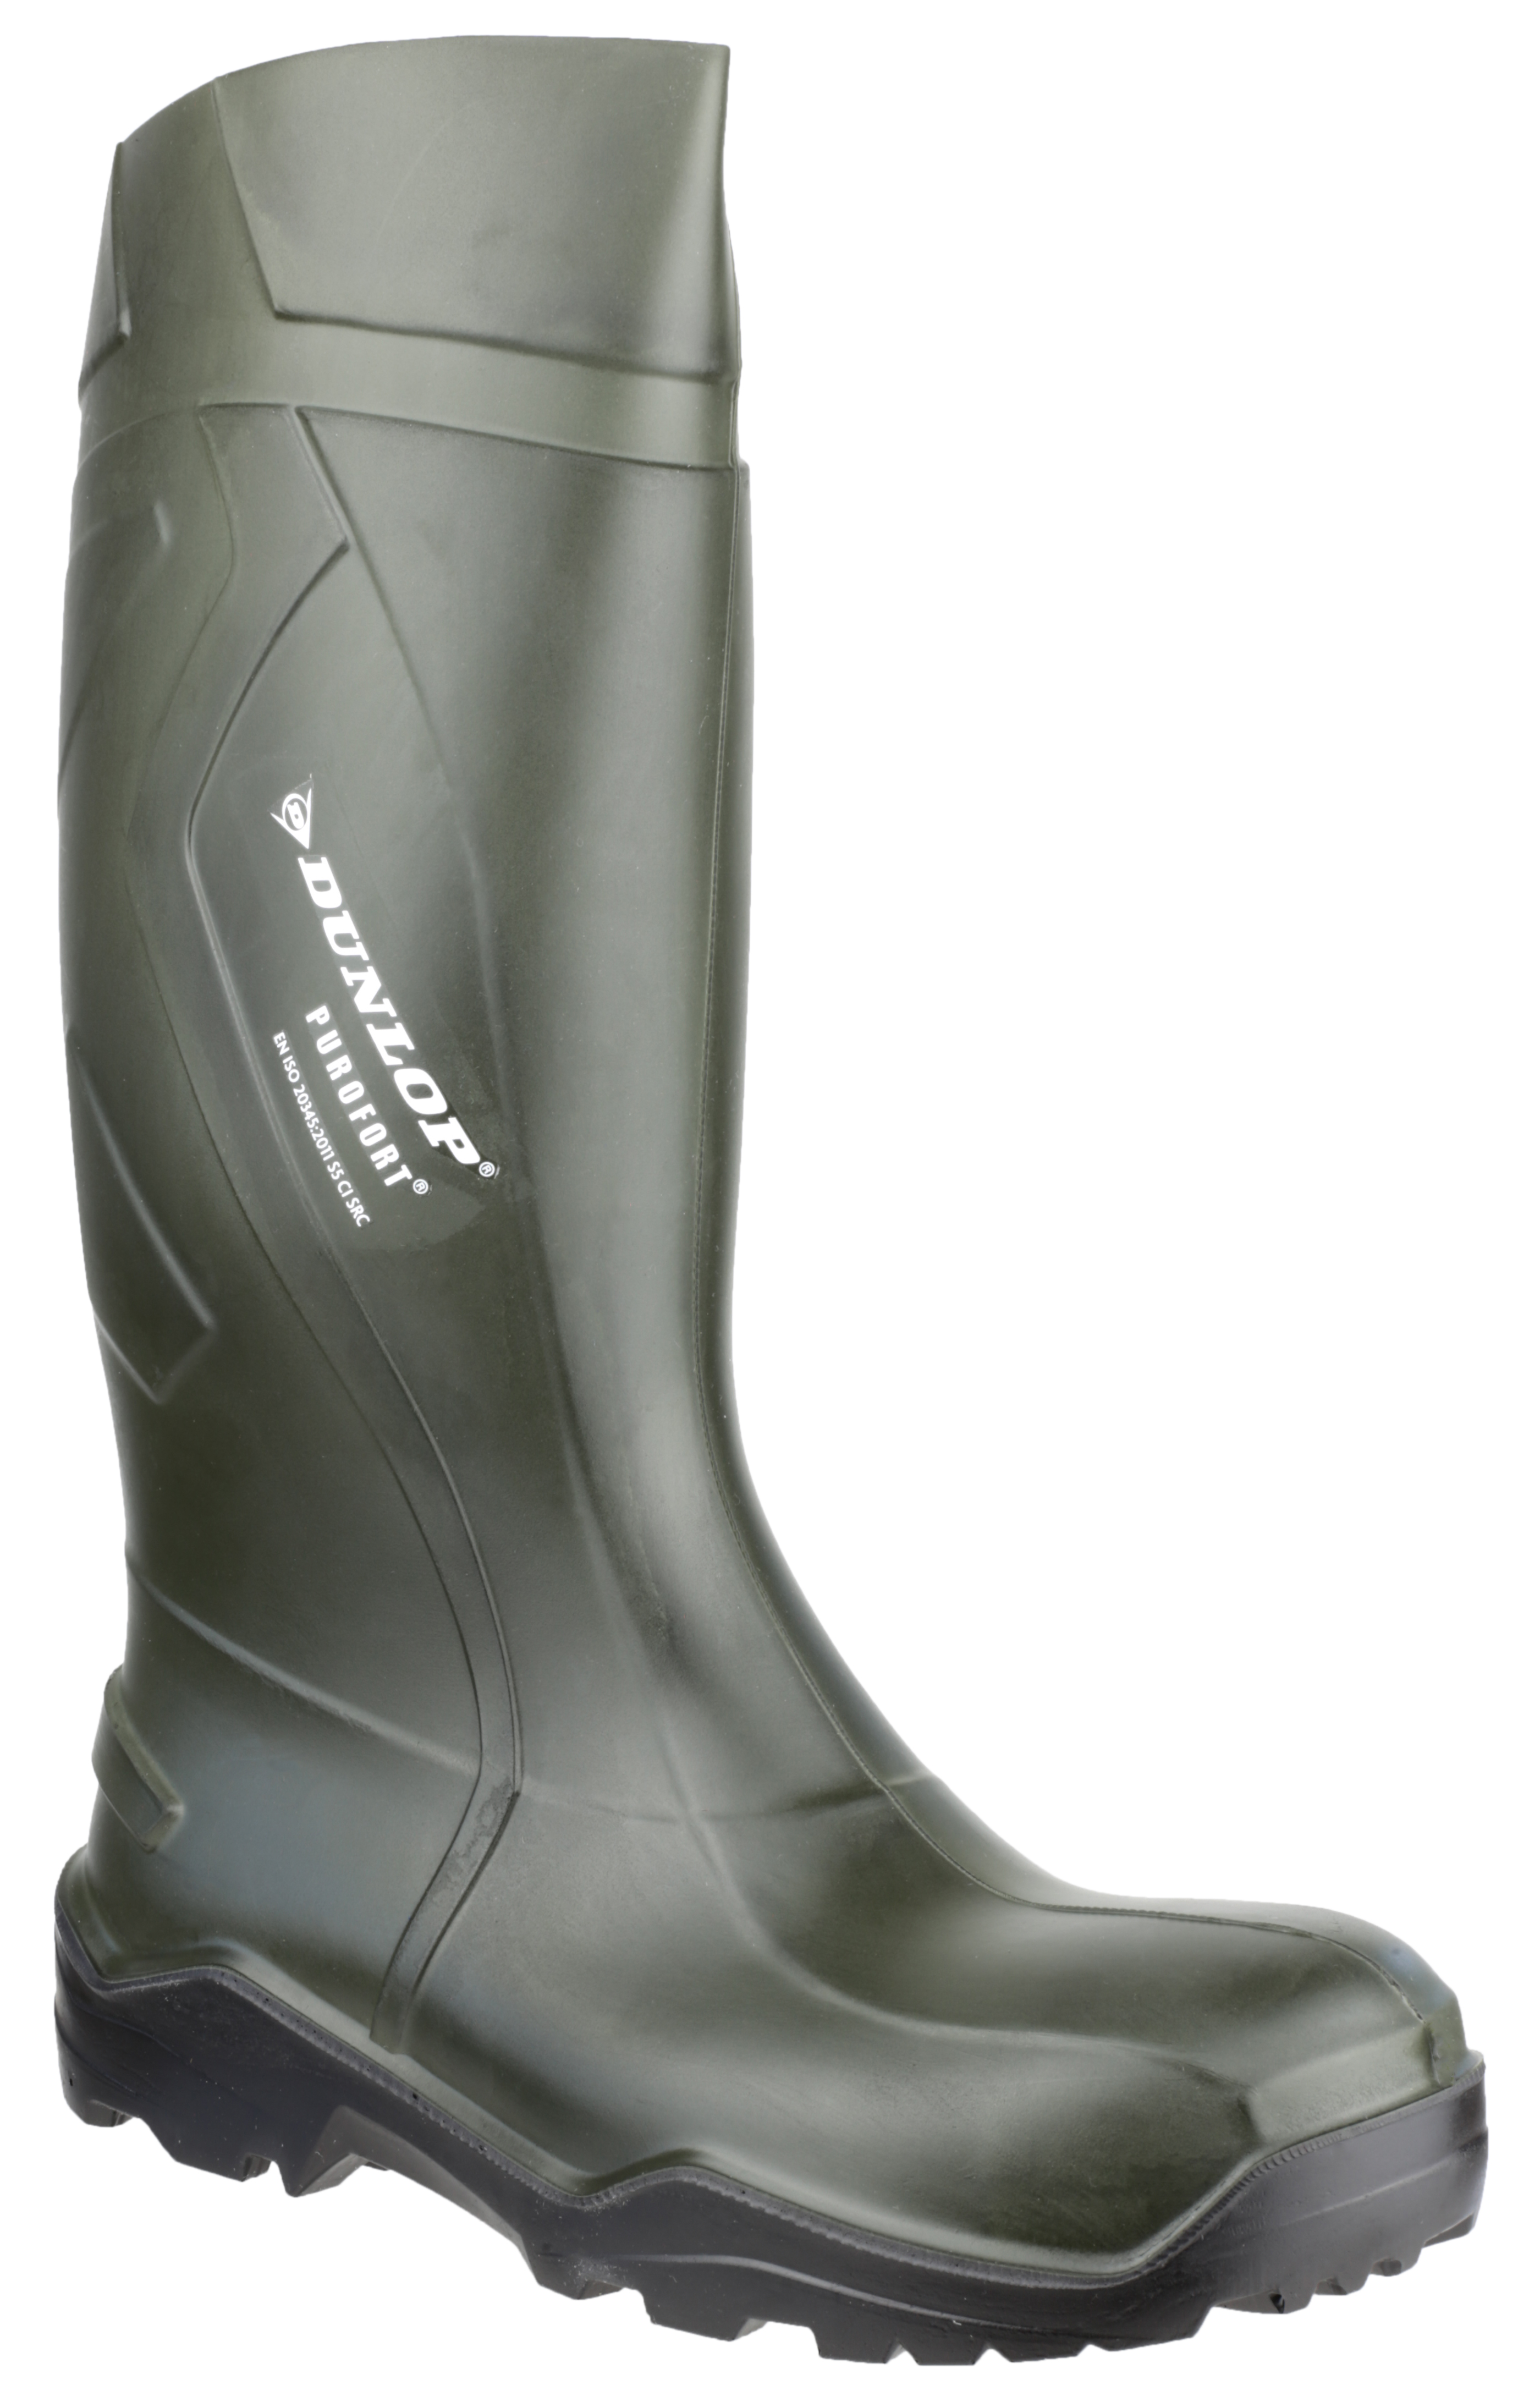 083a7c743b2 Details about Dunlop Purofort + Full Safety Welly Green C762933 Wellies  Wellington Boots 3-14